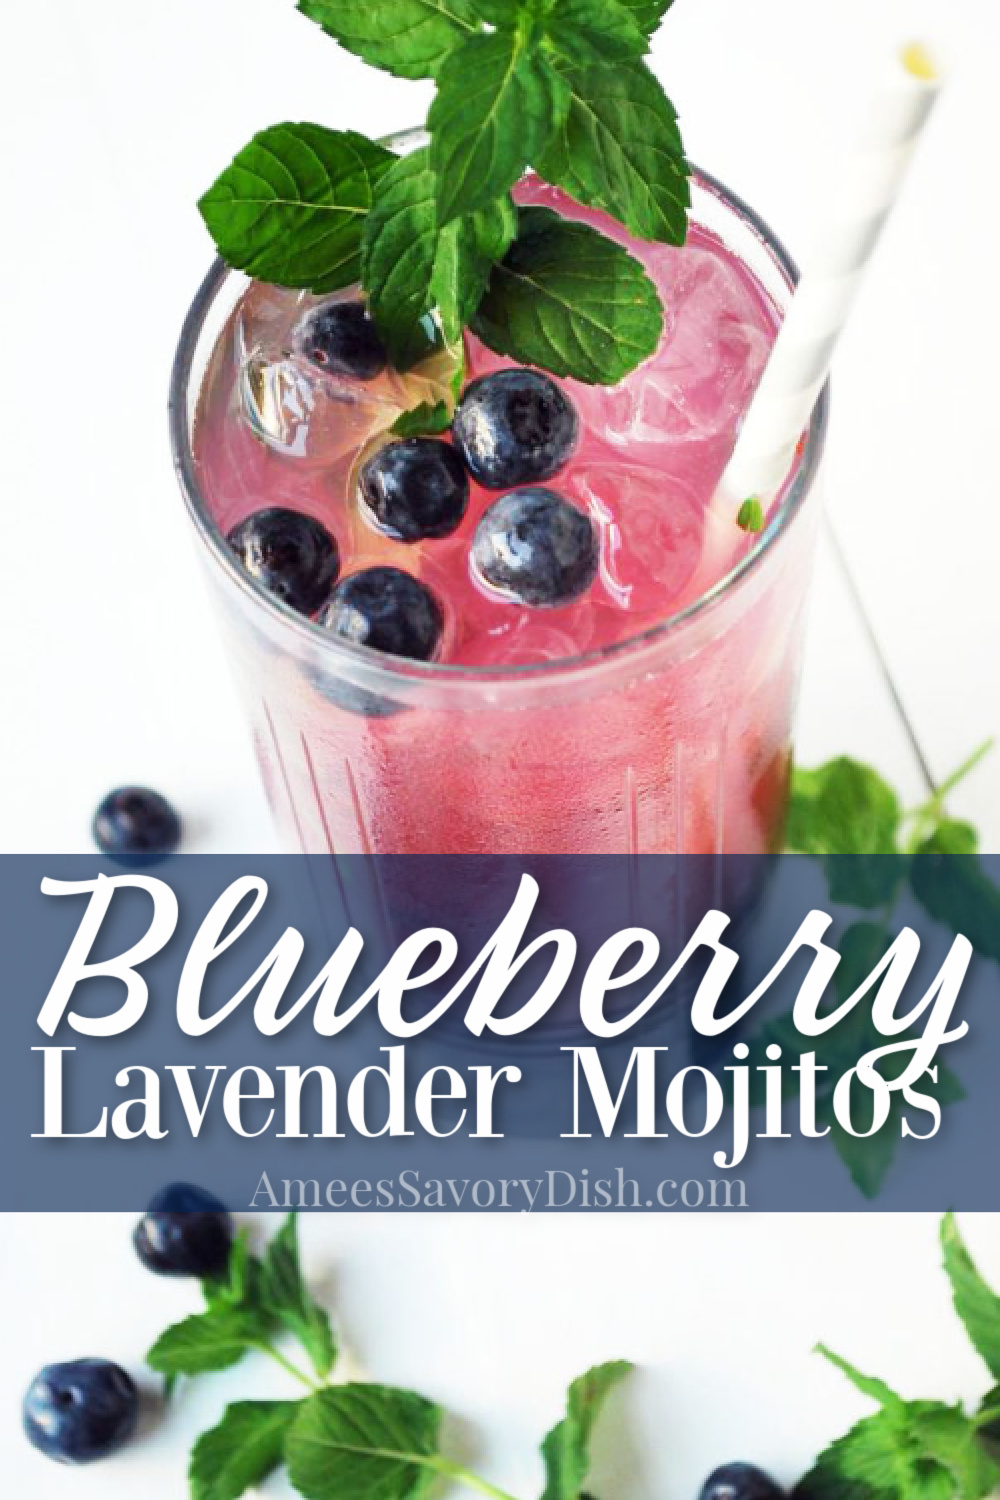 This Blueberry Lavender Mojito recipe makes the perfect summer cocktail made with blueberry lavender simple syrup, fresh lime, white rum, mint, and seasonal blueberries. #mojitos #mojitorecipe #cocktailrecipe #cocktails #summercocktails #blueberrymojito via @Ameessavorydish